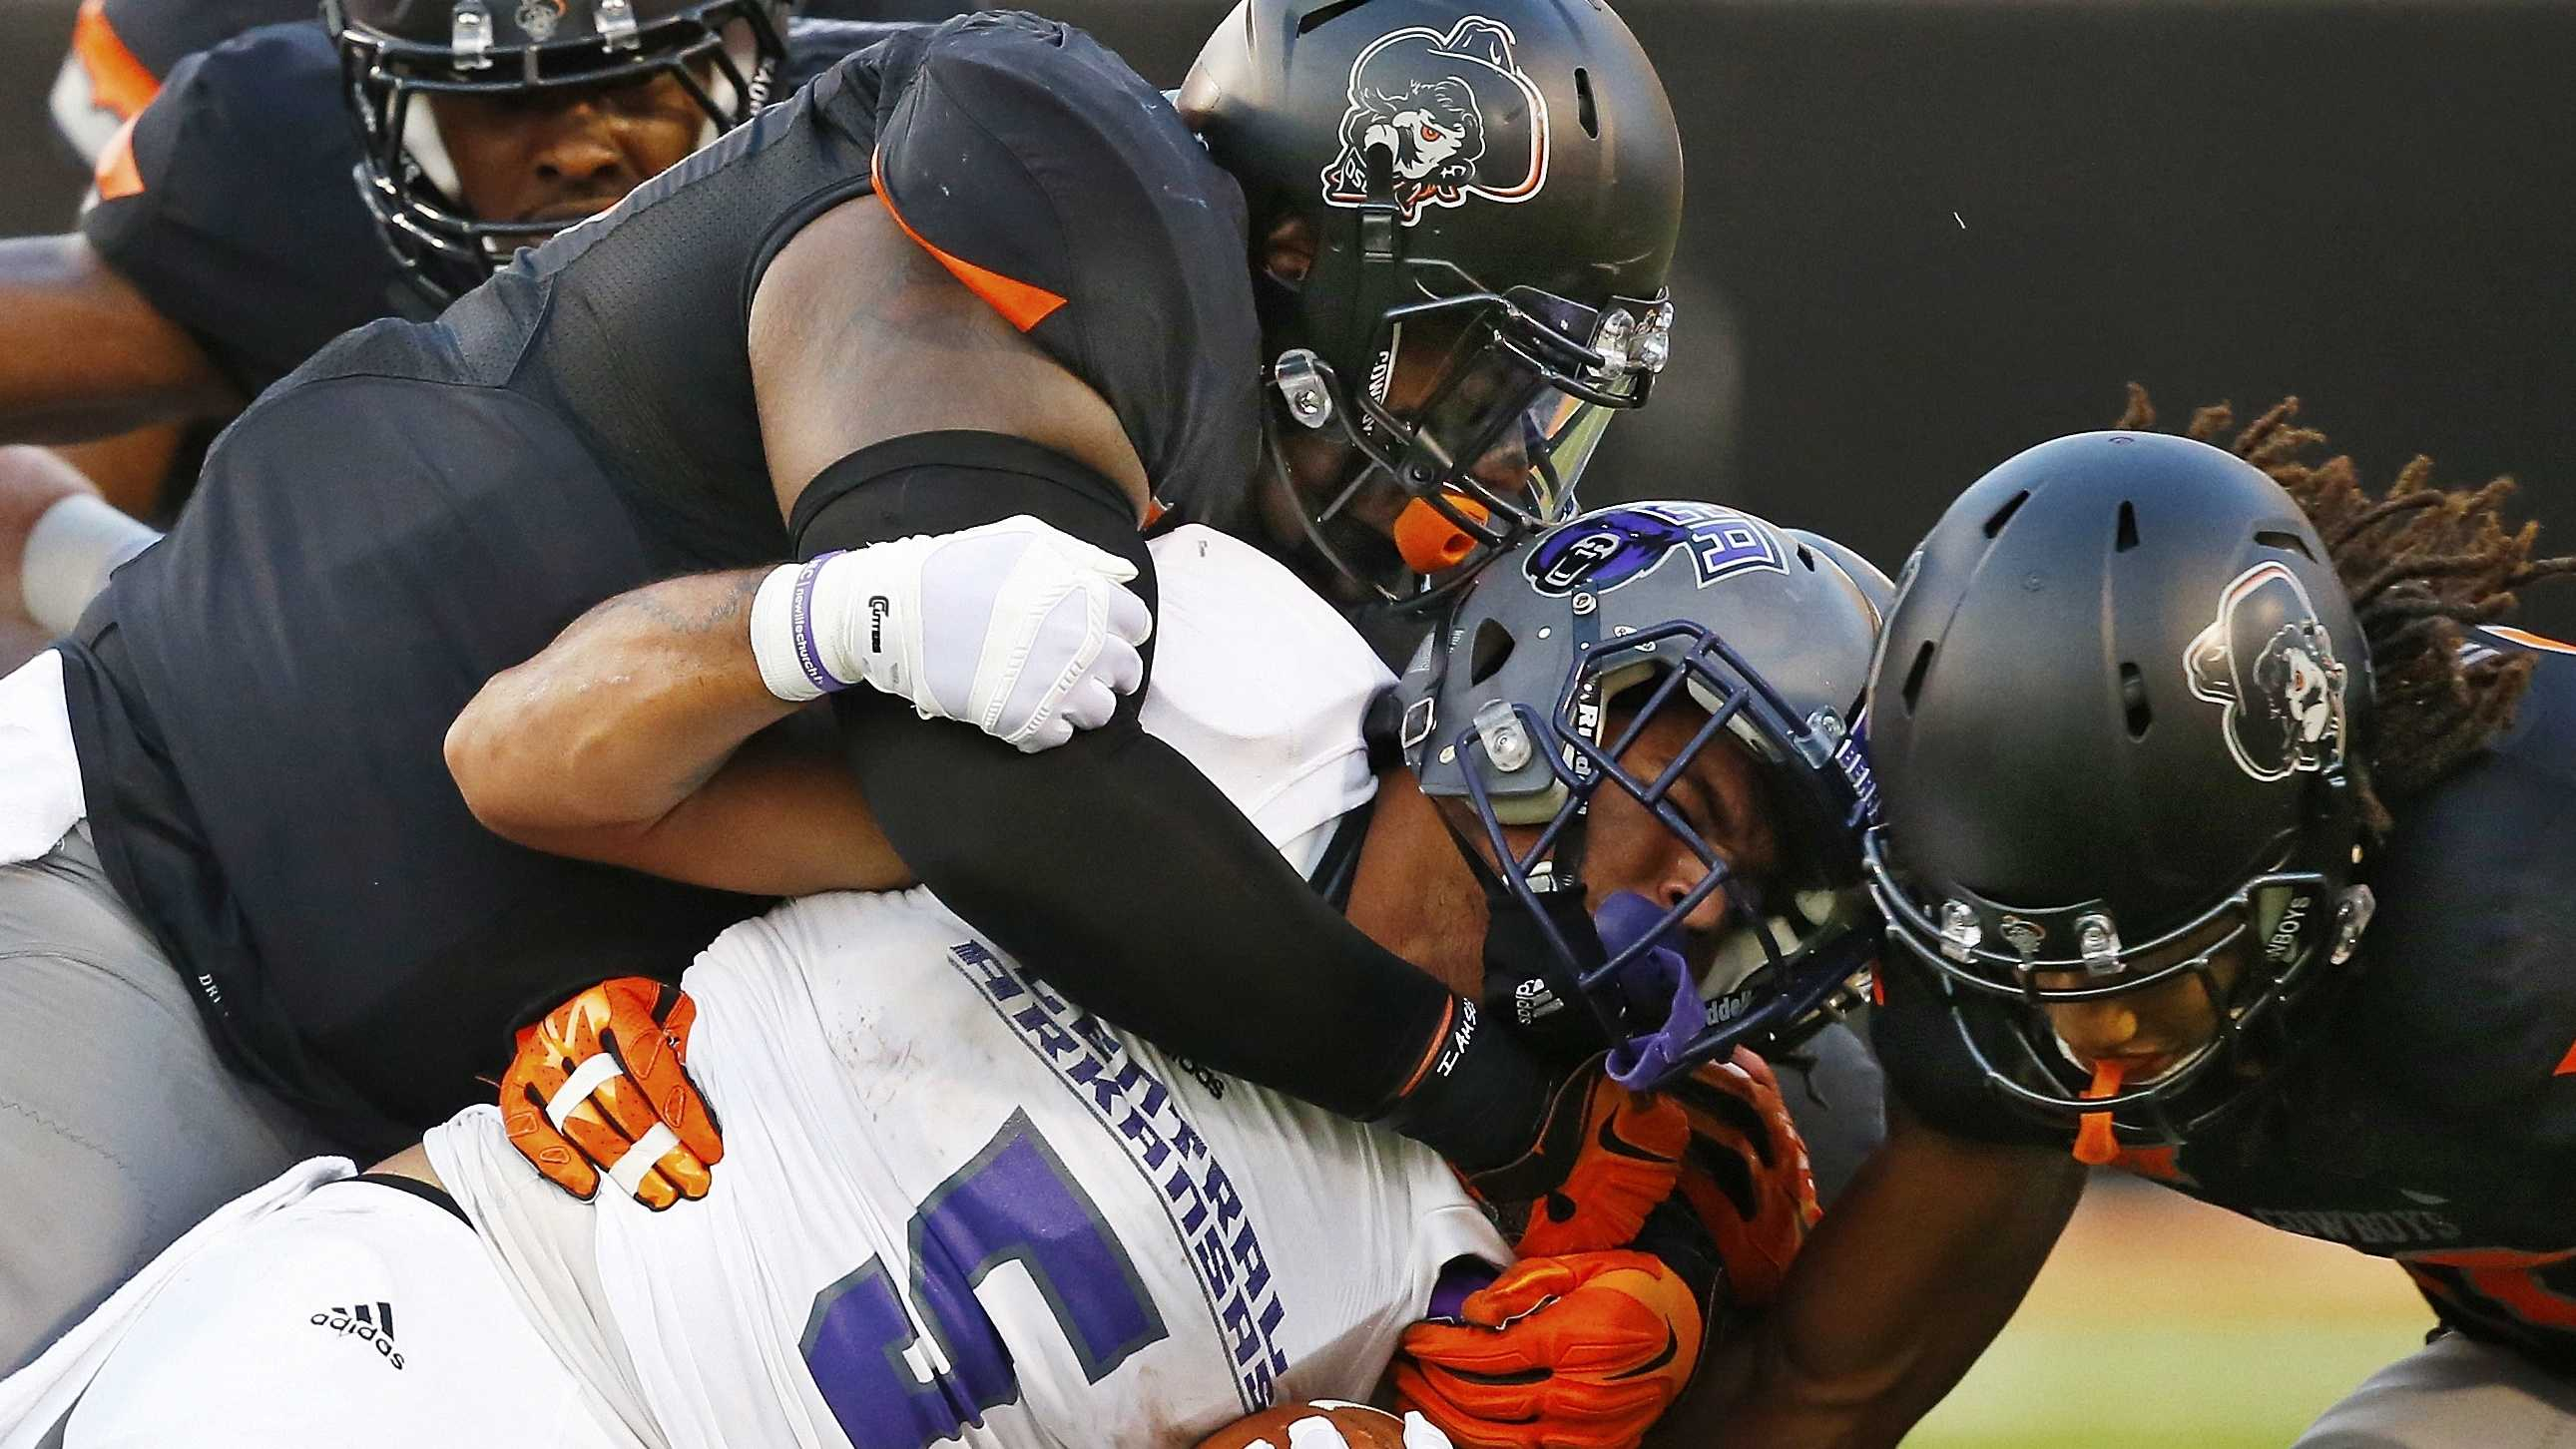 Central Arkansas running back Dominique Thomas (5) is tackled by a number of Oklahoma State defenders in the first quarter of an NCAA college football game in Stillwater, Okla., Saturday, Sept. 12, 2015. (AP Photo/Sue Ogrocki)